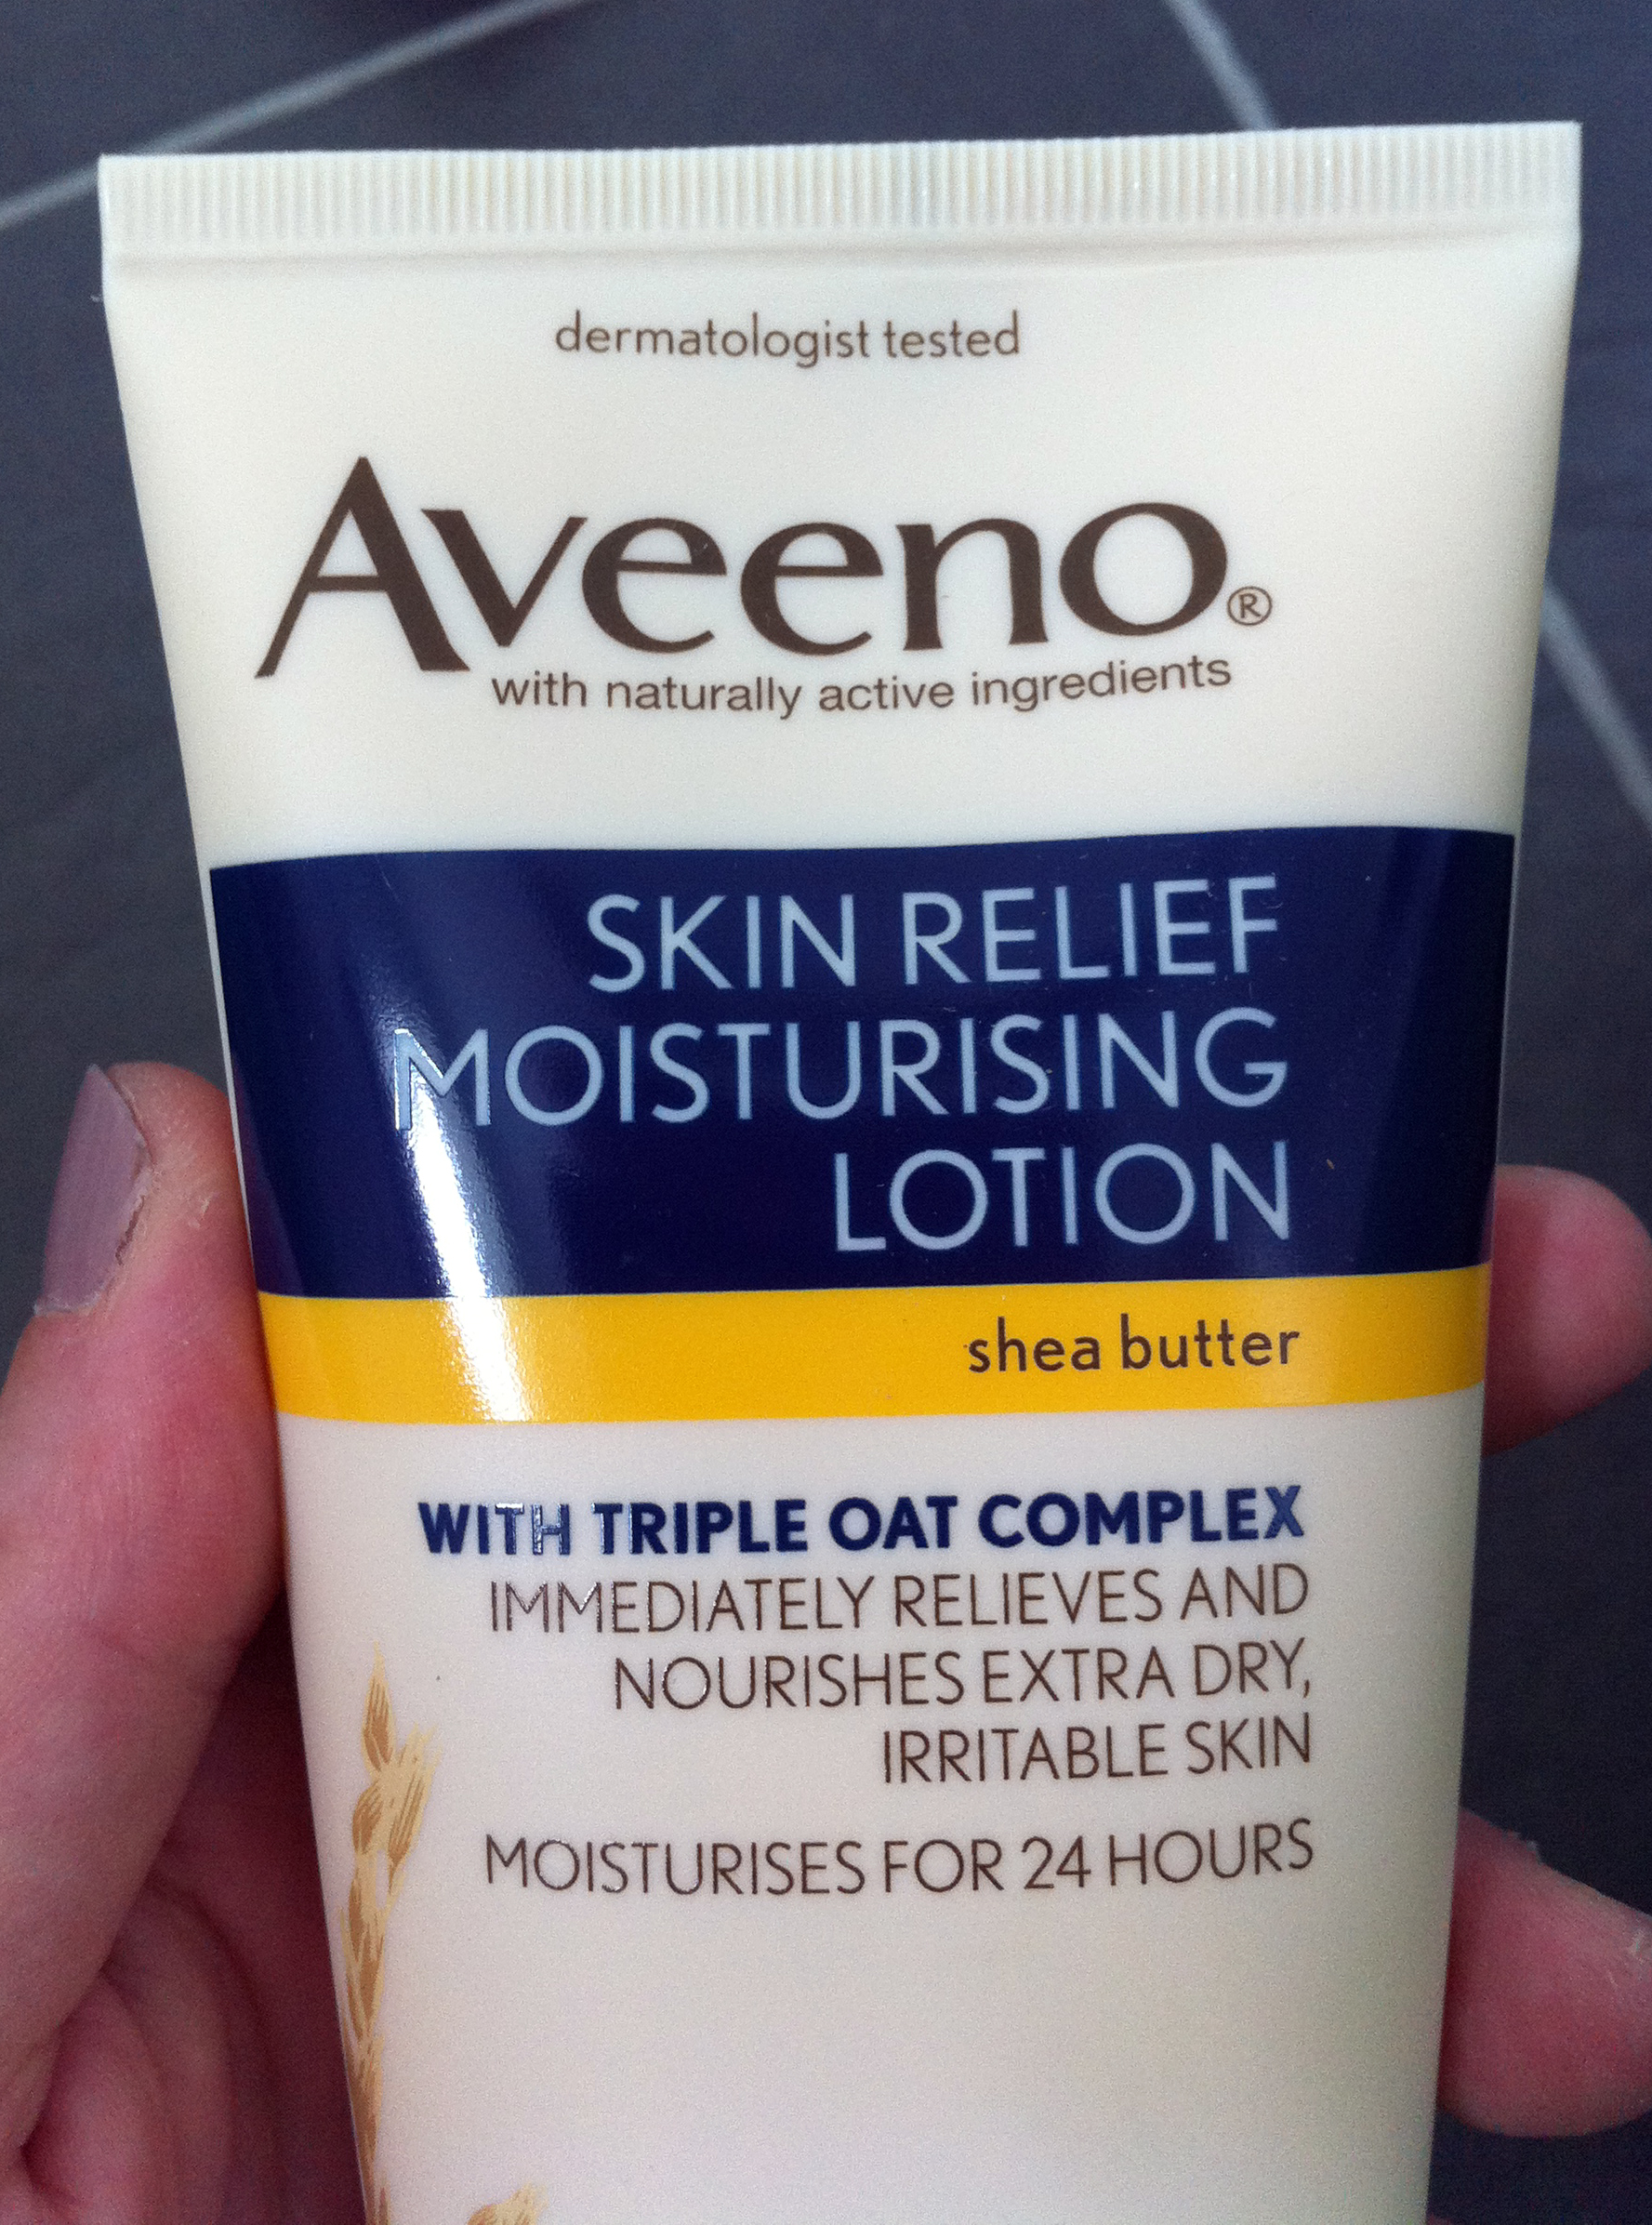 Skin Relief Moisturising Lotion